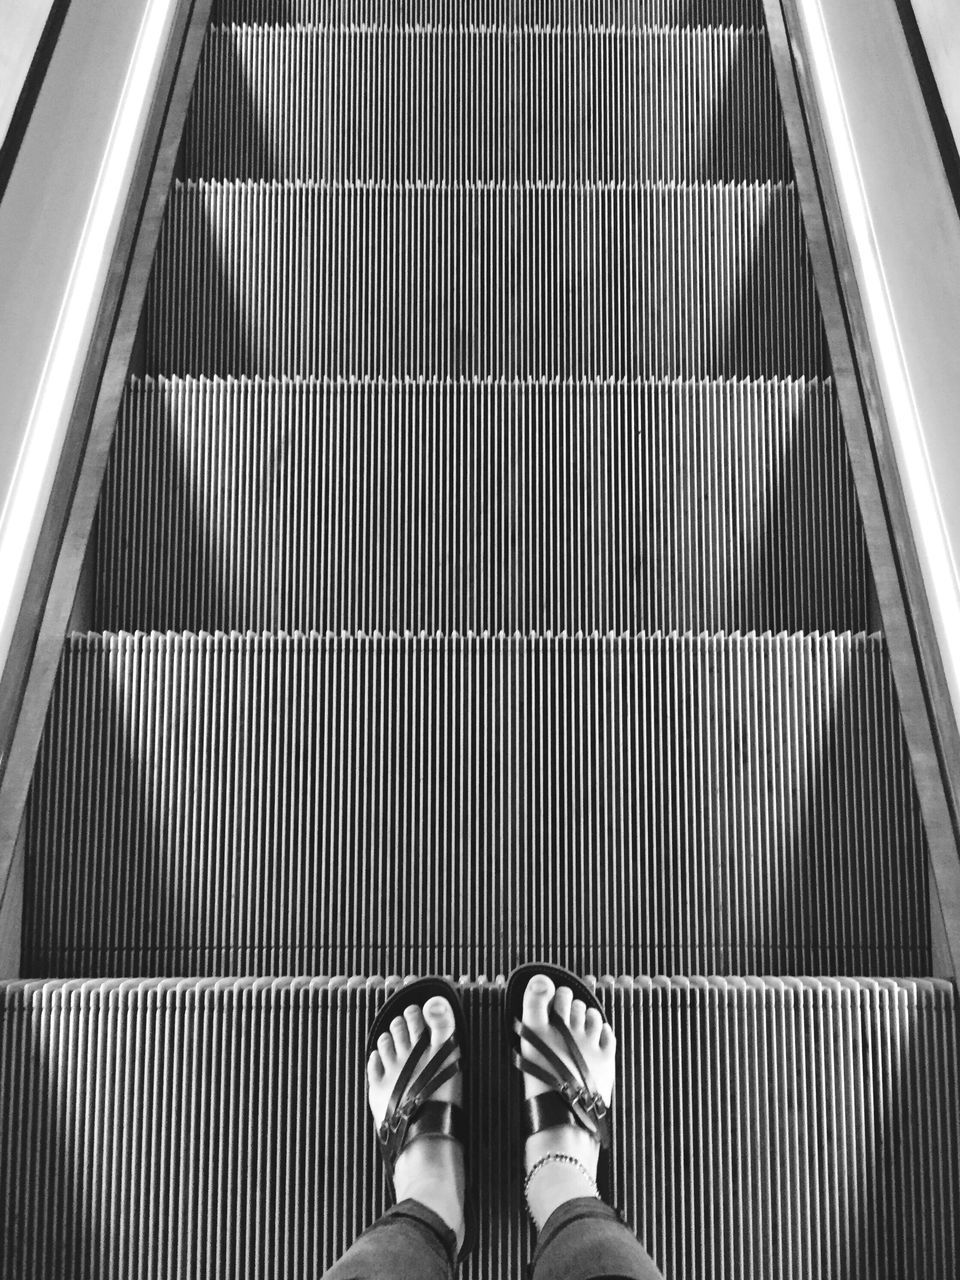 escalator, staircase, shoe, steps and staircases, steps, low section, standing, high angle view, human leg, modern, indoors, one person, metal, convenience, shiny, transportation, human body part, men, technology, futuristic, people, adults only, adult, day, one man only